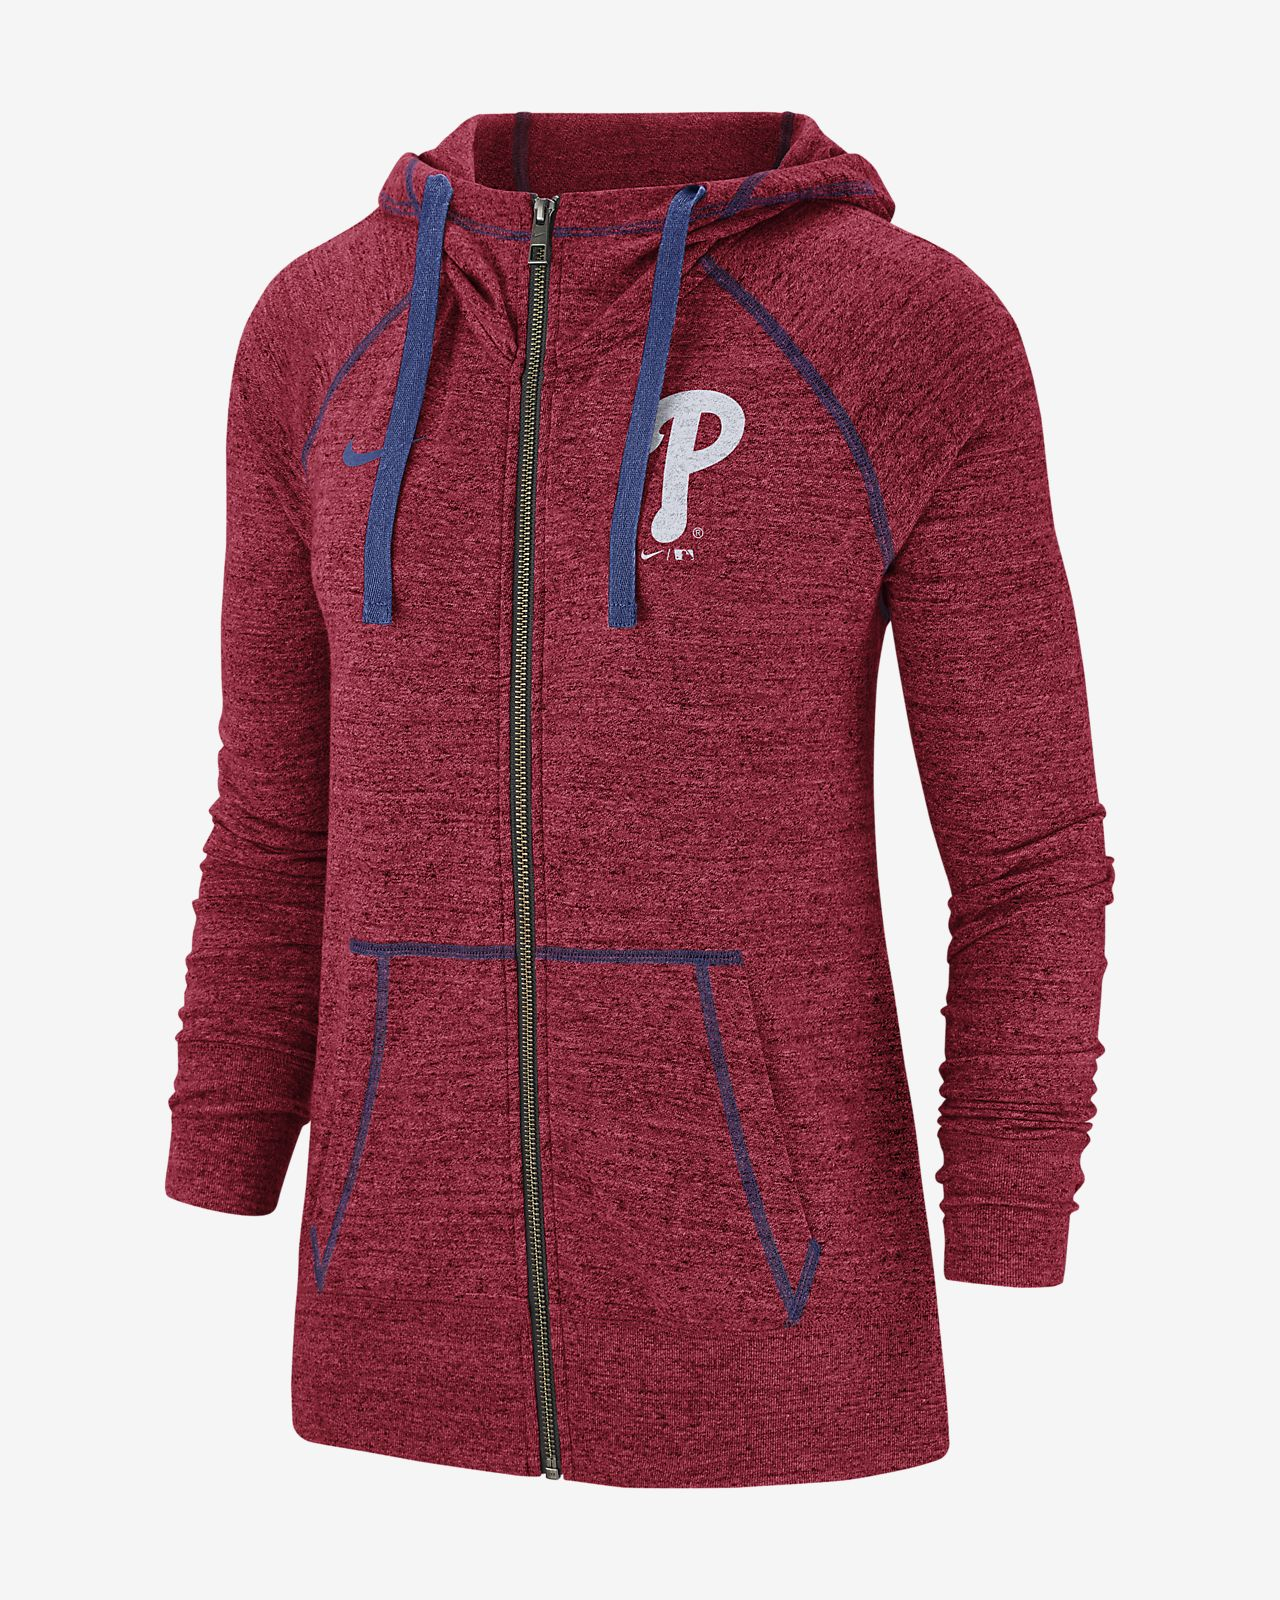 Nike Gym Vintage (MLB Phillies) Women's Full-Zip Hoodie